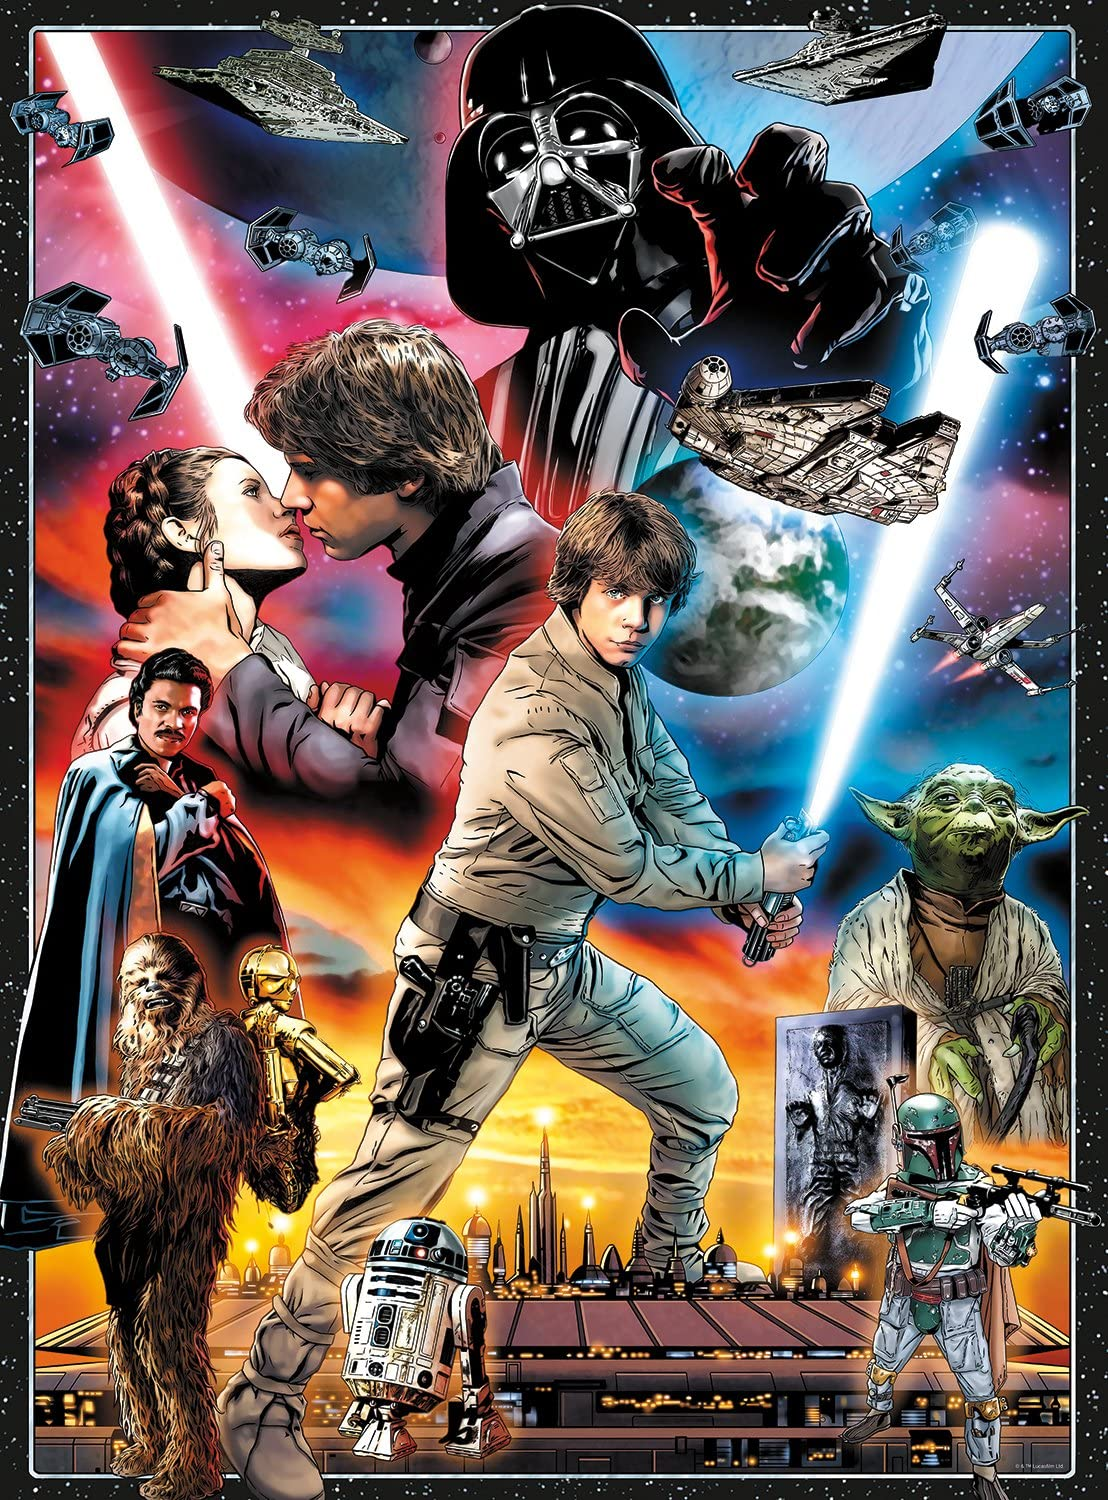 Buffalo Games Star Wars Vintage Art: You'll Find I'm Full of Surprises - 1000 Piece Jigsaw Puzzle